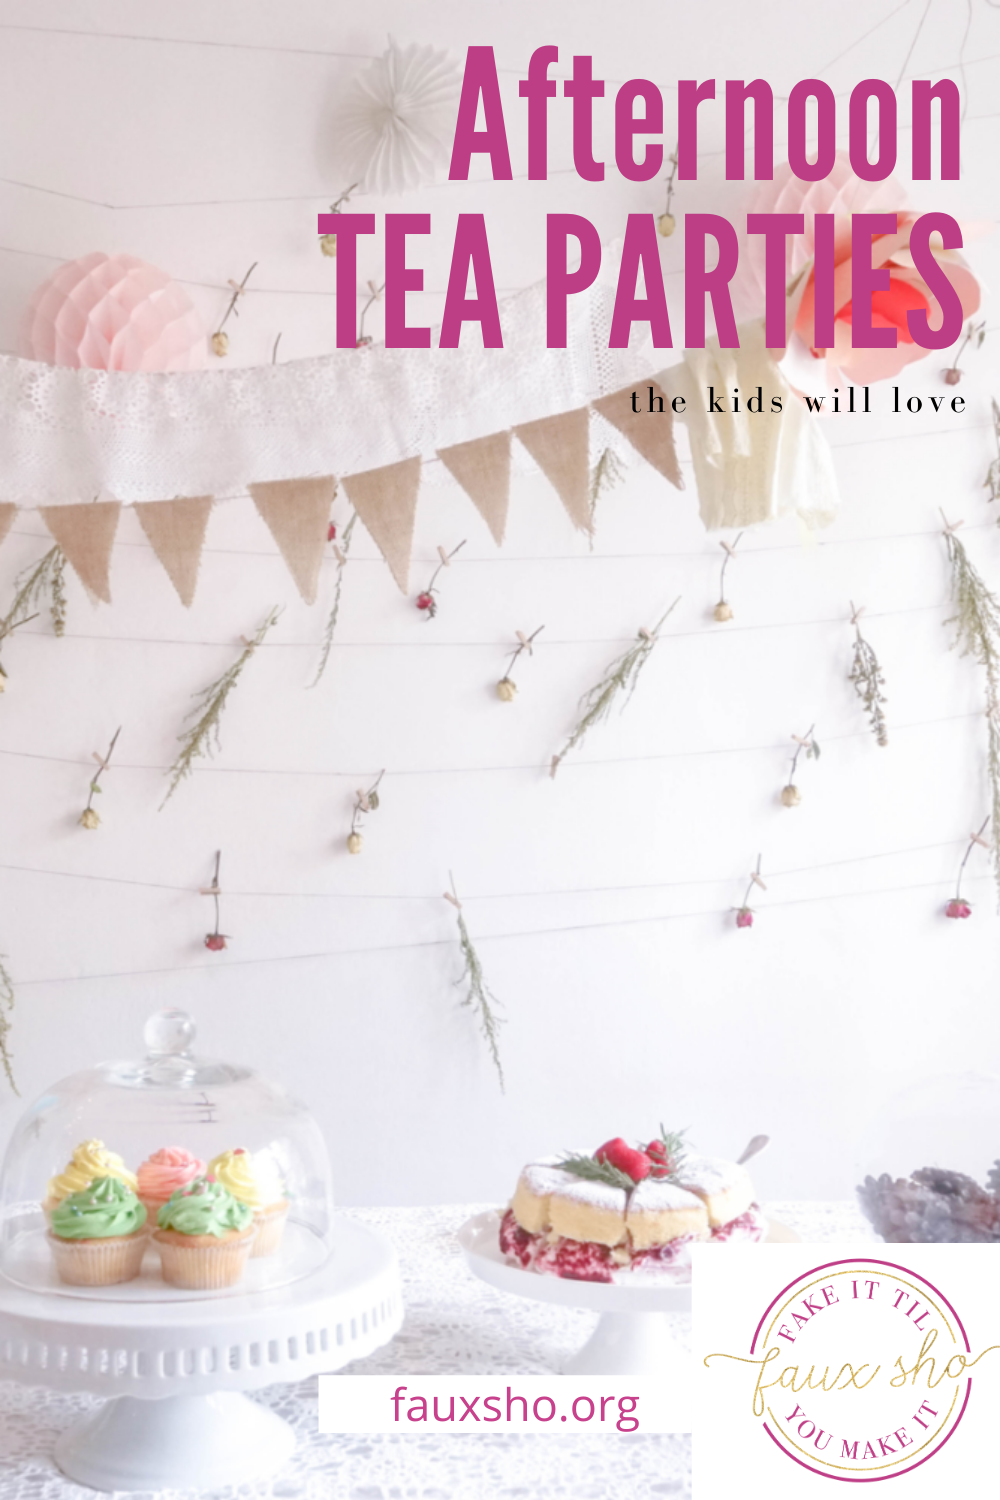 Hosting an afternoon tea party? Then you have to check out this post! From tables to decor to food, we've got all the best ideas covered. #FauxShoBlog #AfternoonTeaParty #DIYAfternoonTeaPartyIdeas #AfternoonTeaPartyDecor